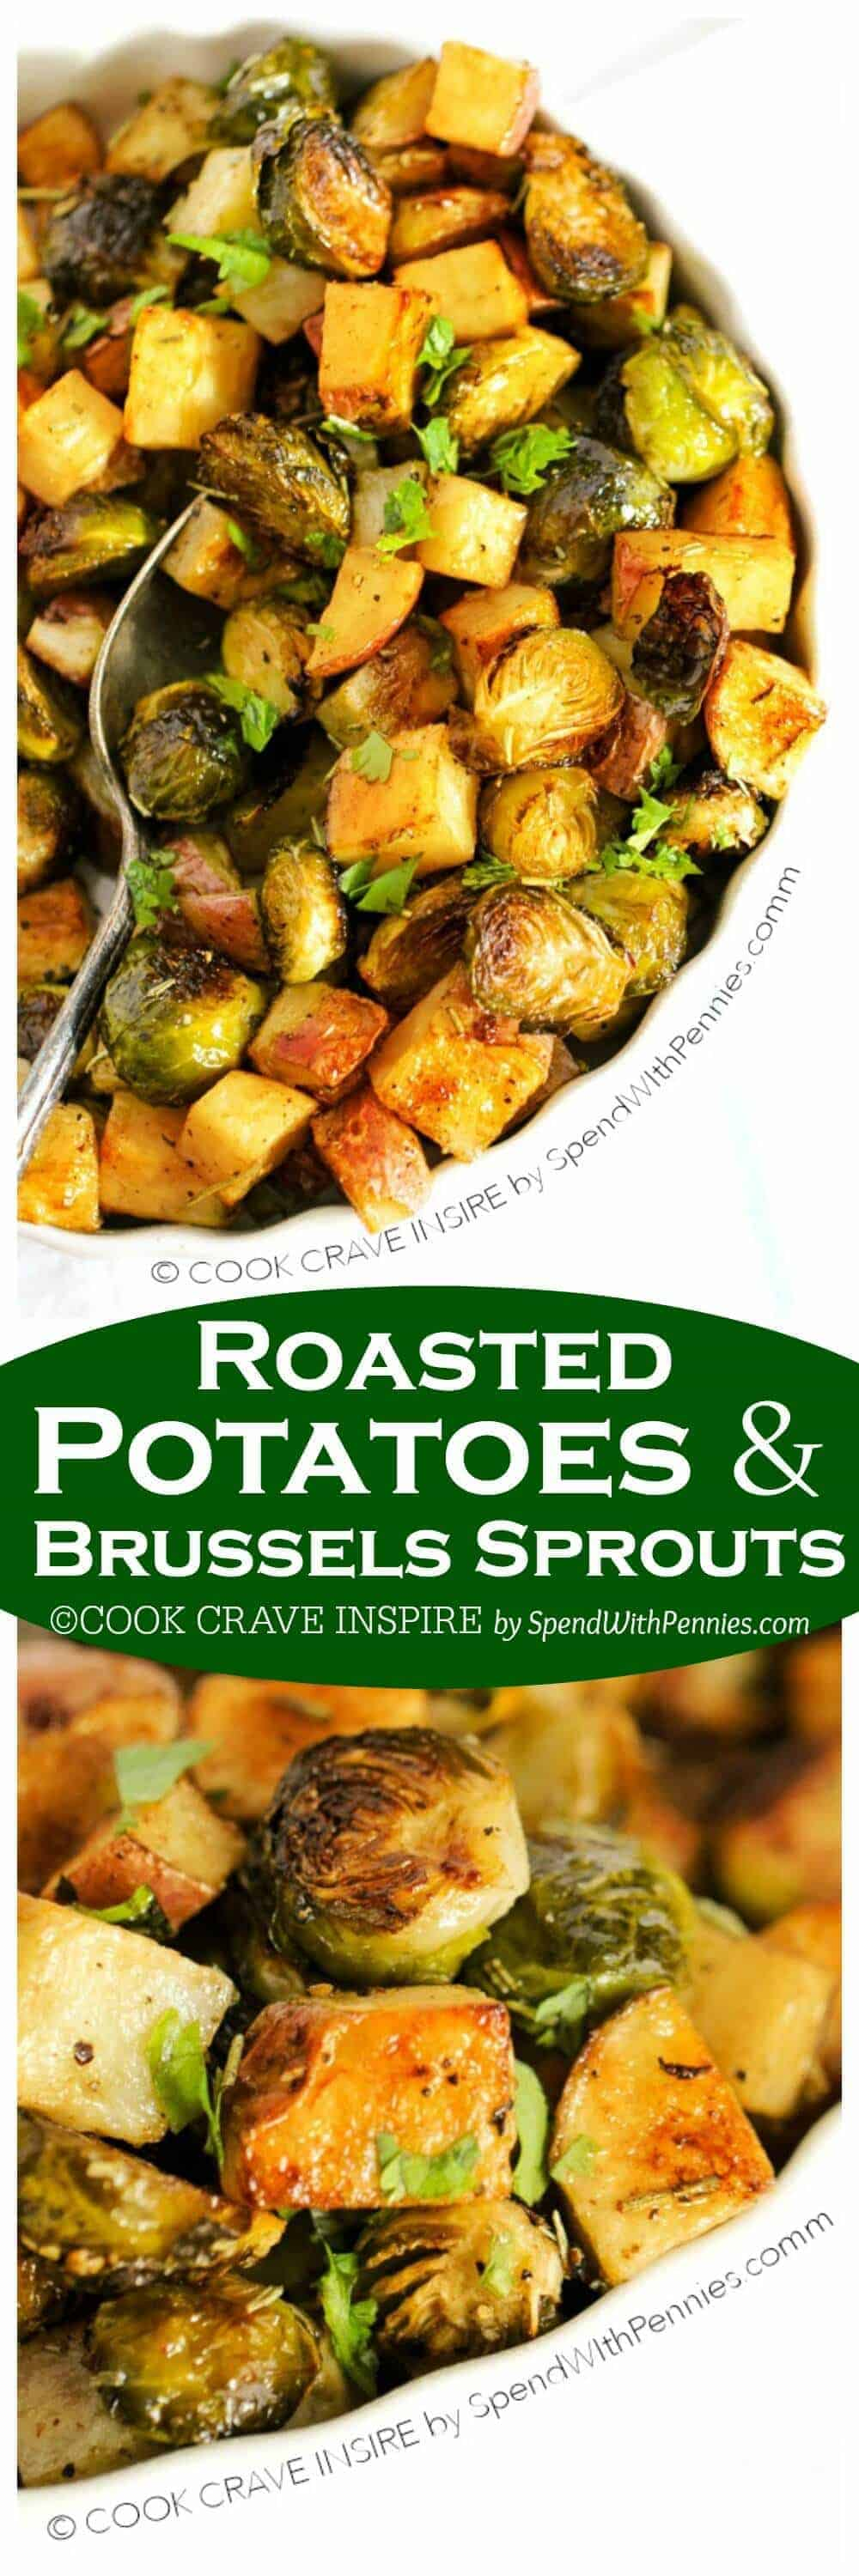 Roasted Potatoes and Brussels Sprouts with a title